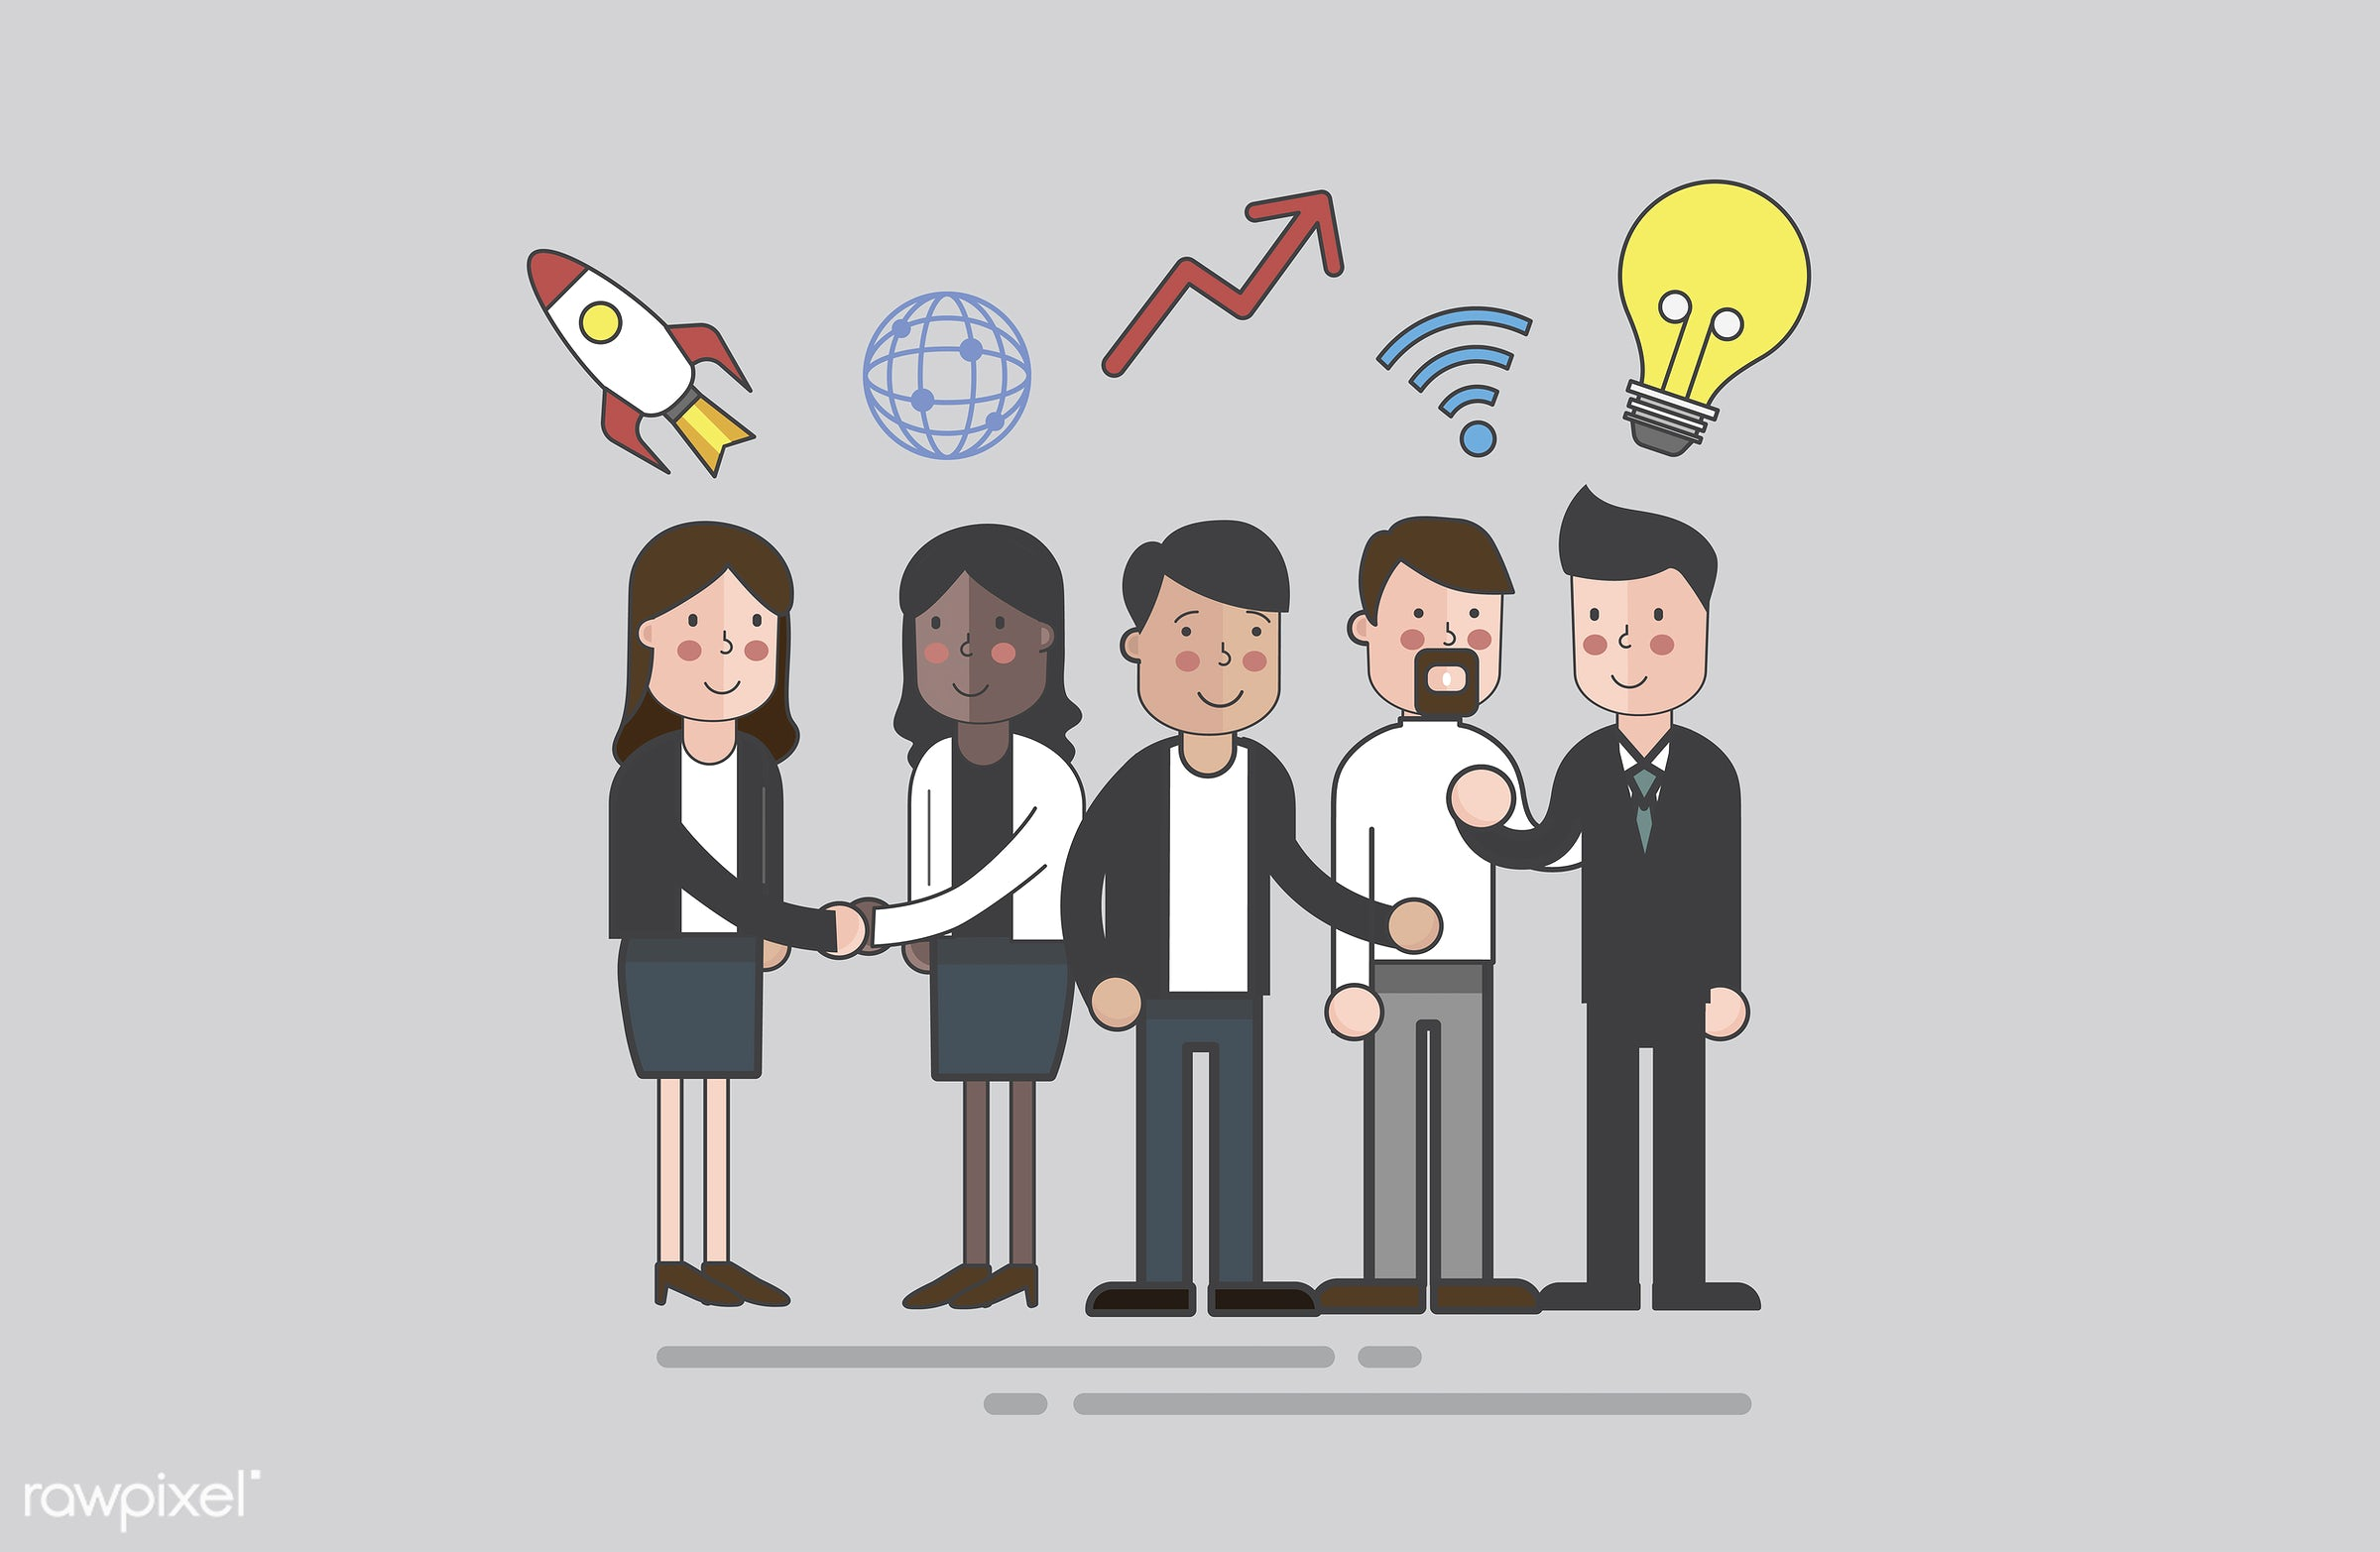 Vector of business people - job, business, cartoon, character, communication, connection, corporate, diversity, drawing,...